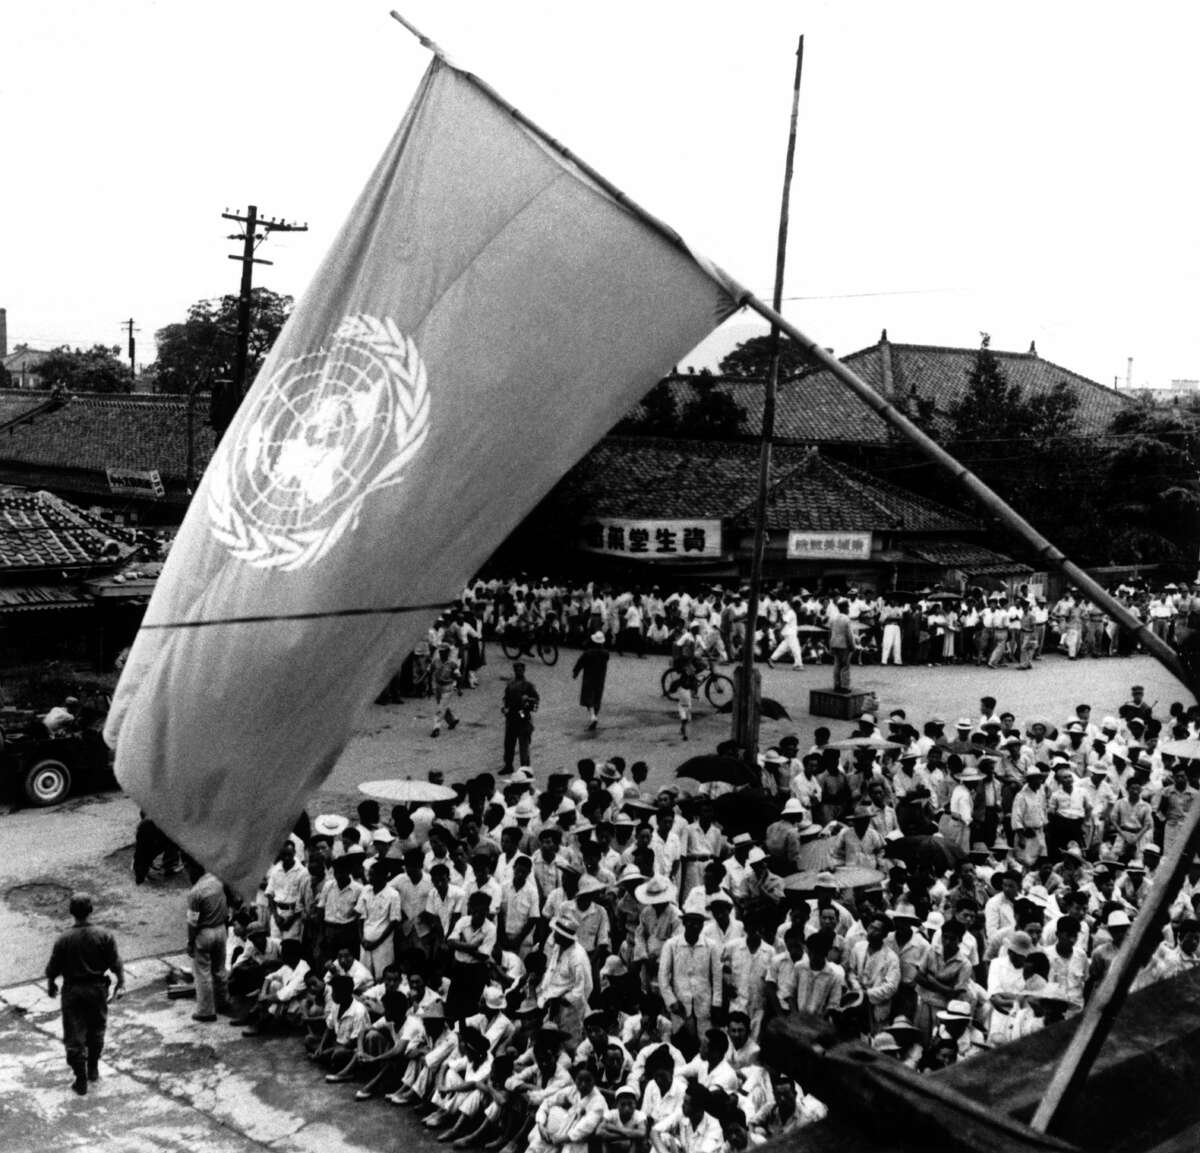 1948: After the Korean peninsula was freed from Japanese occupation following WWII, the United Nations divided Korea at the 38th parallel, with the Soviet Union occupying the north and the United States the south. The Korean peninsula was never reunified as intended and the counties of North and South Korea were established.